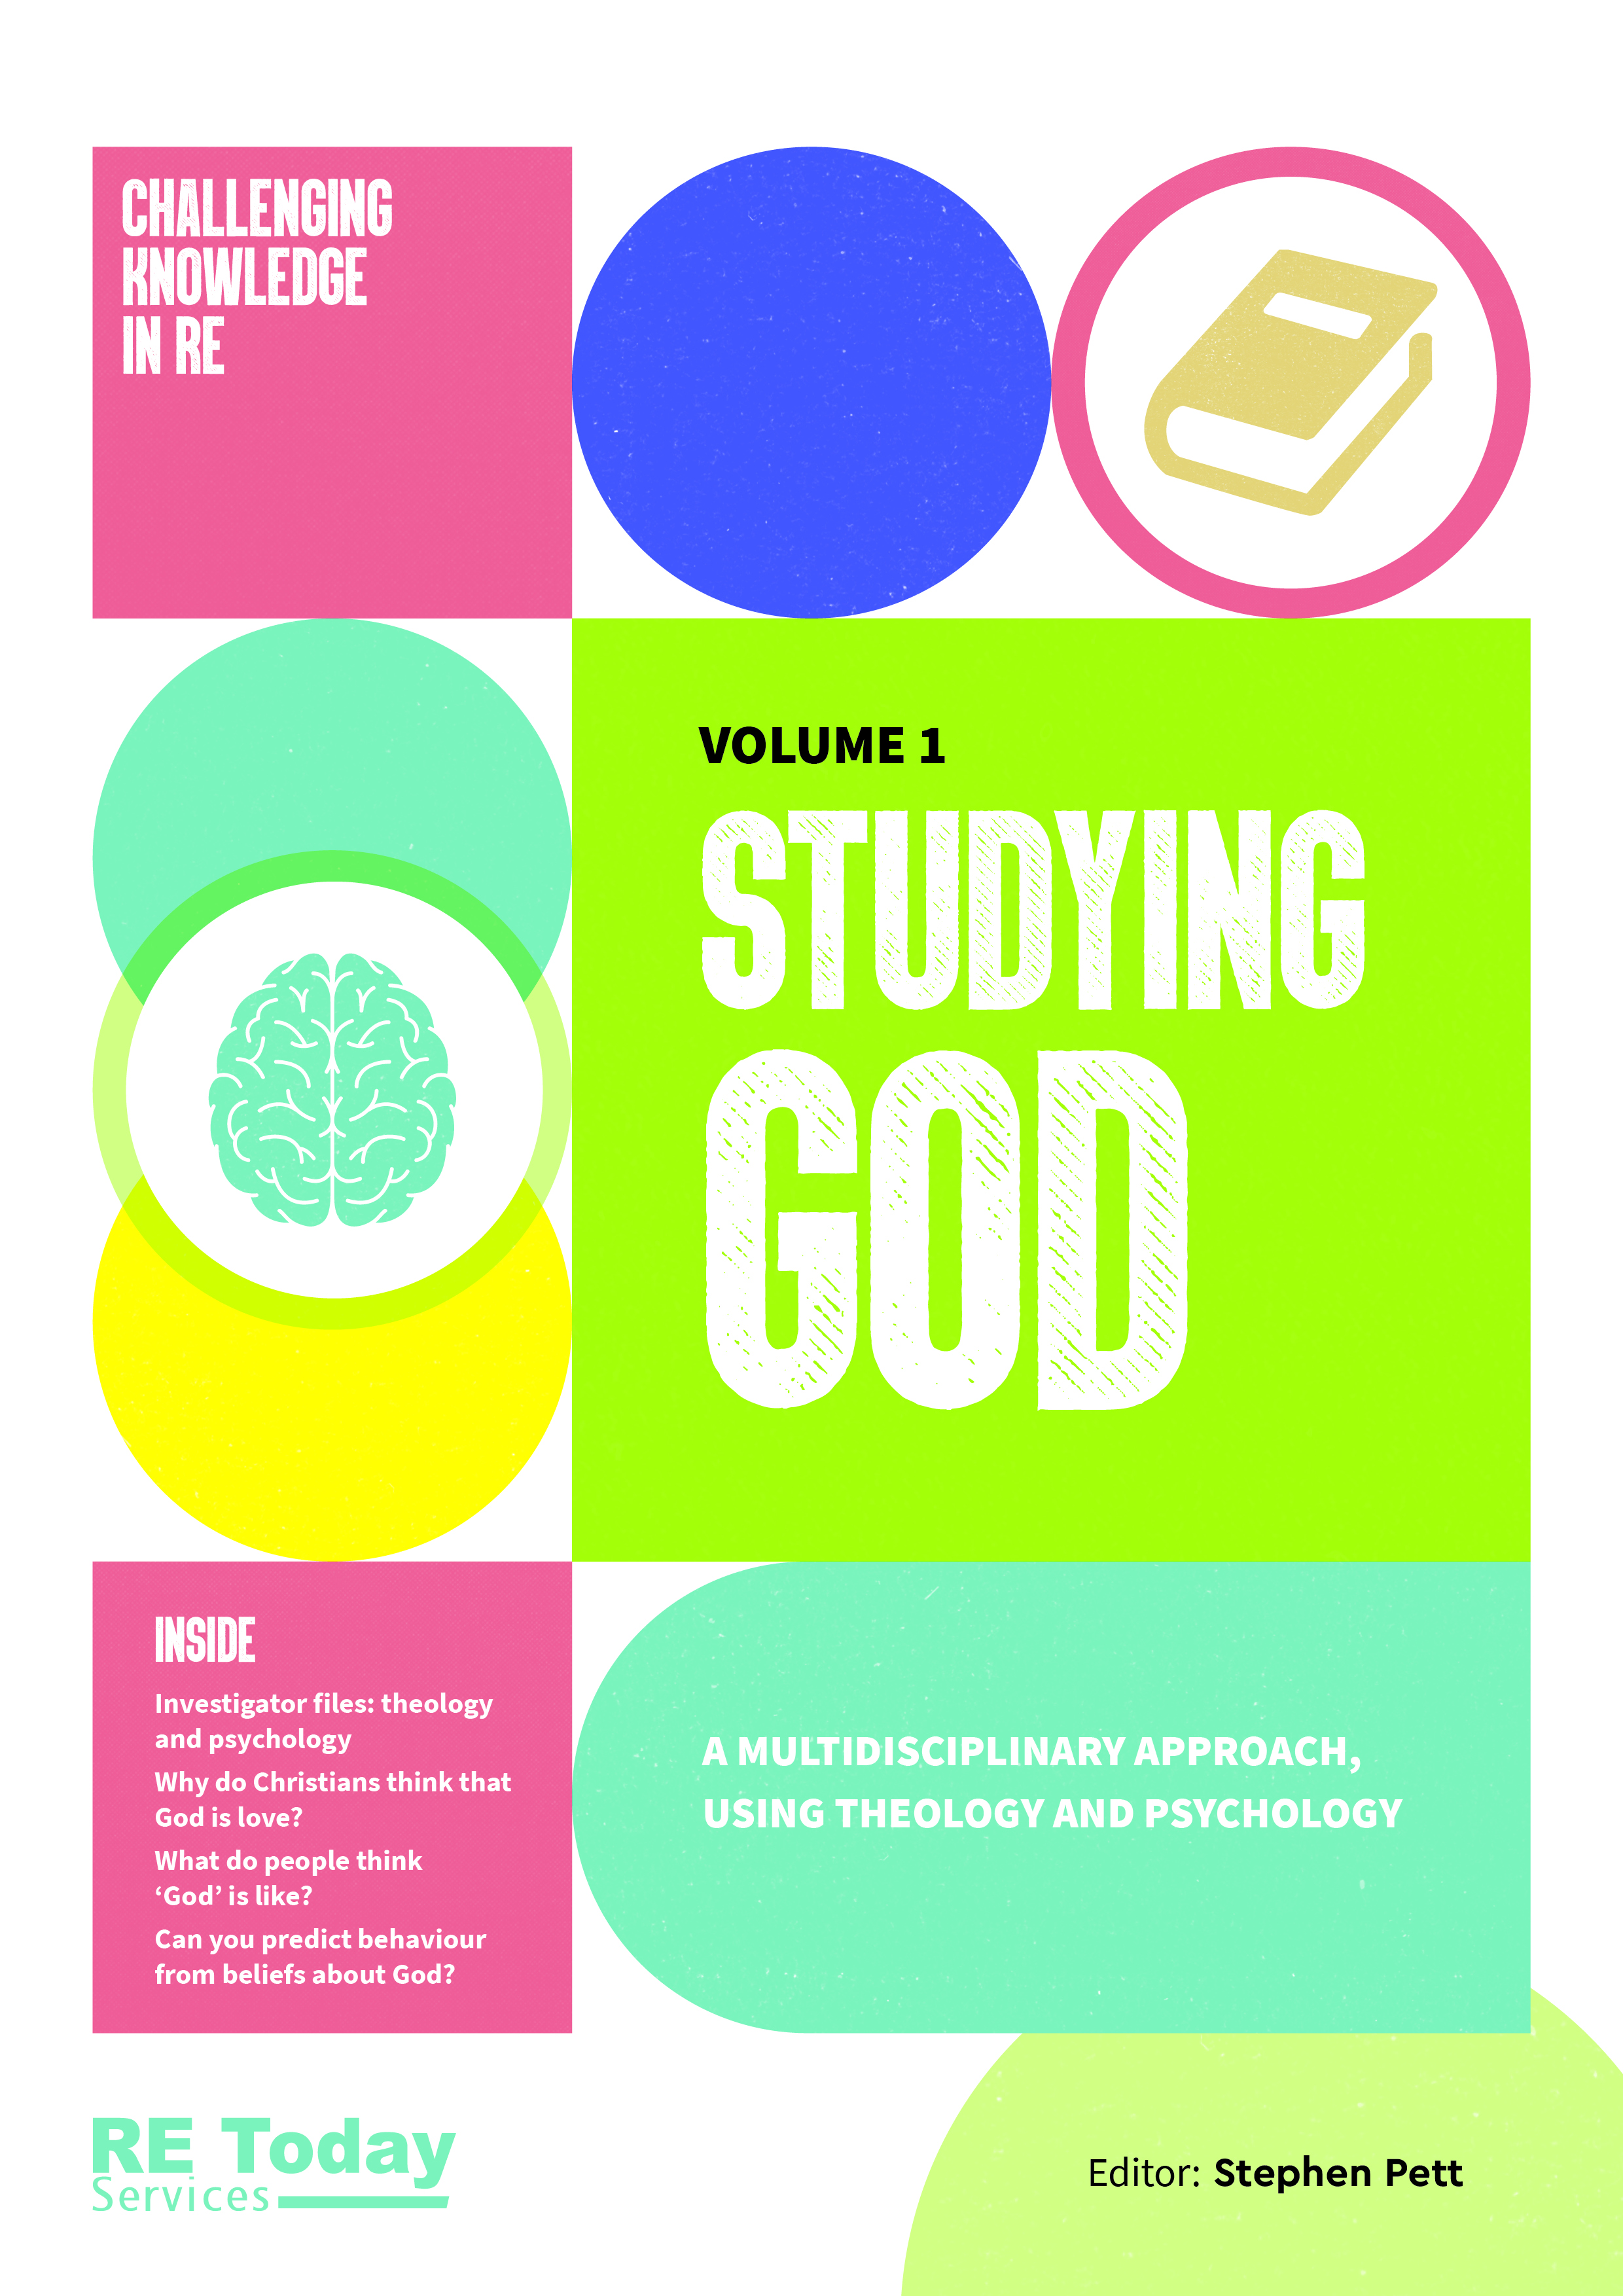 More information on Challenging knowledge in RE: Vol 1: Studying God